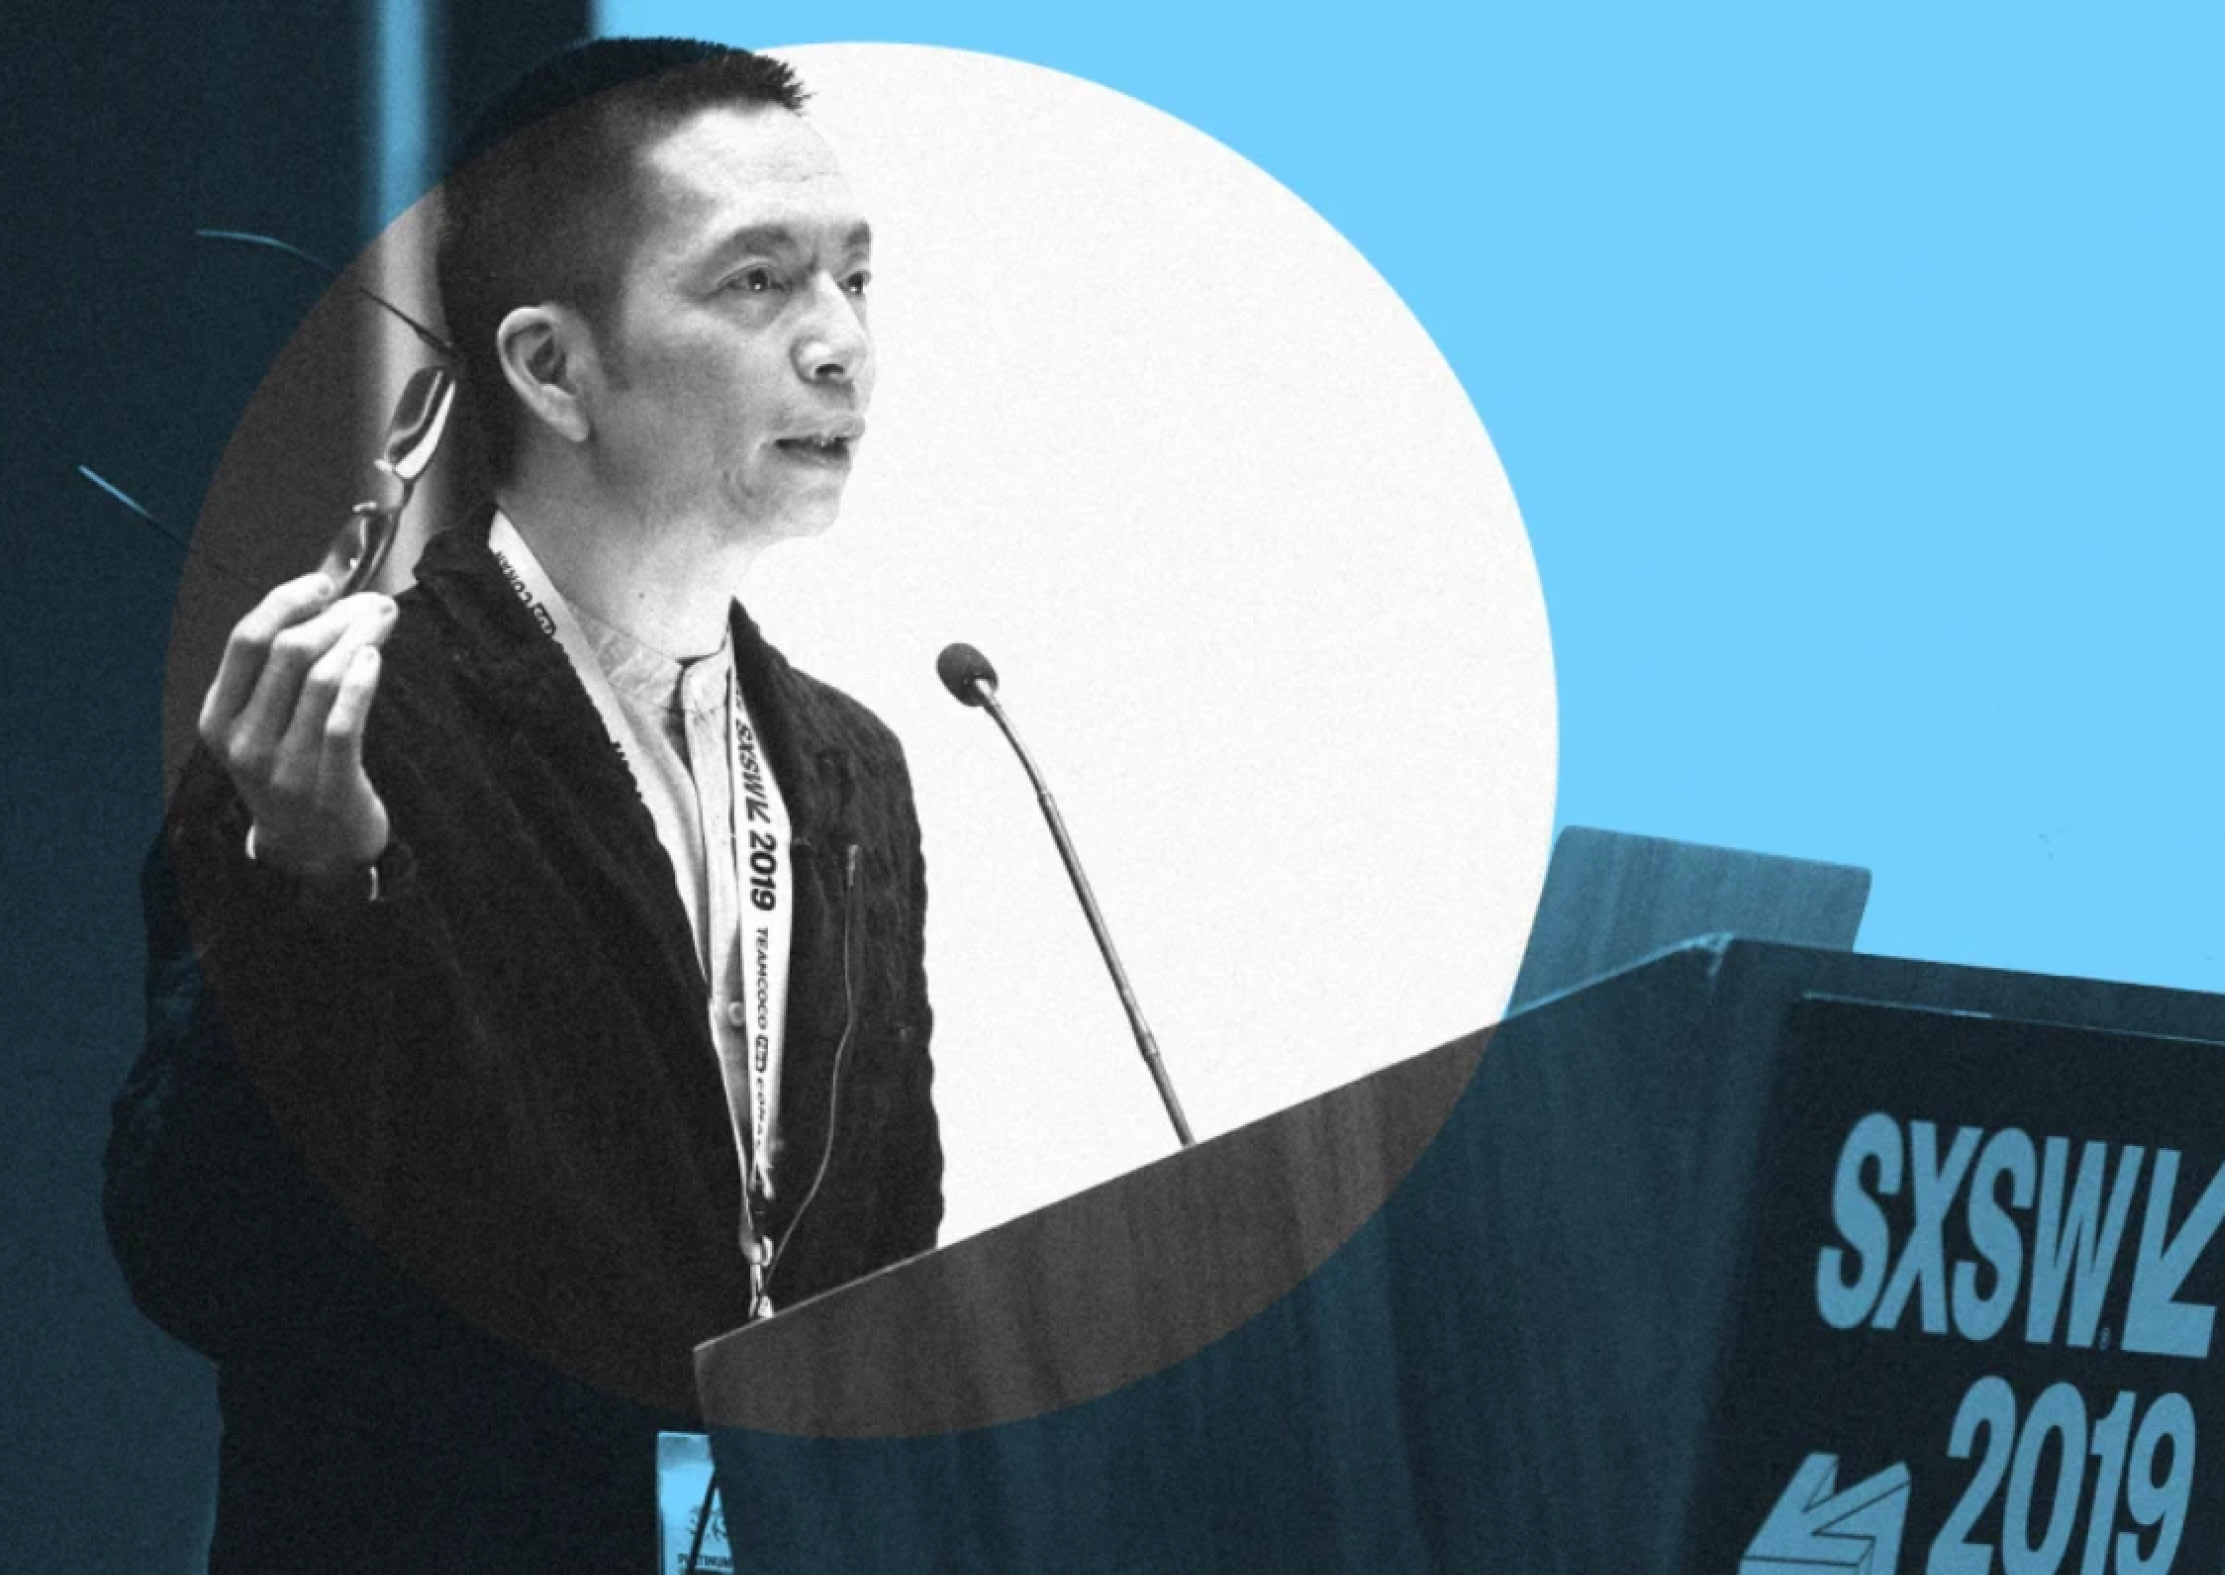 John Maeda: In reality design is not that important